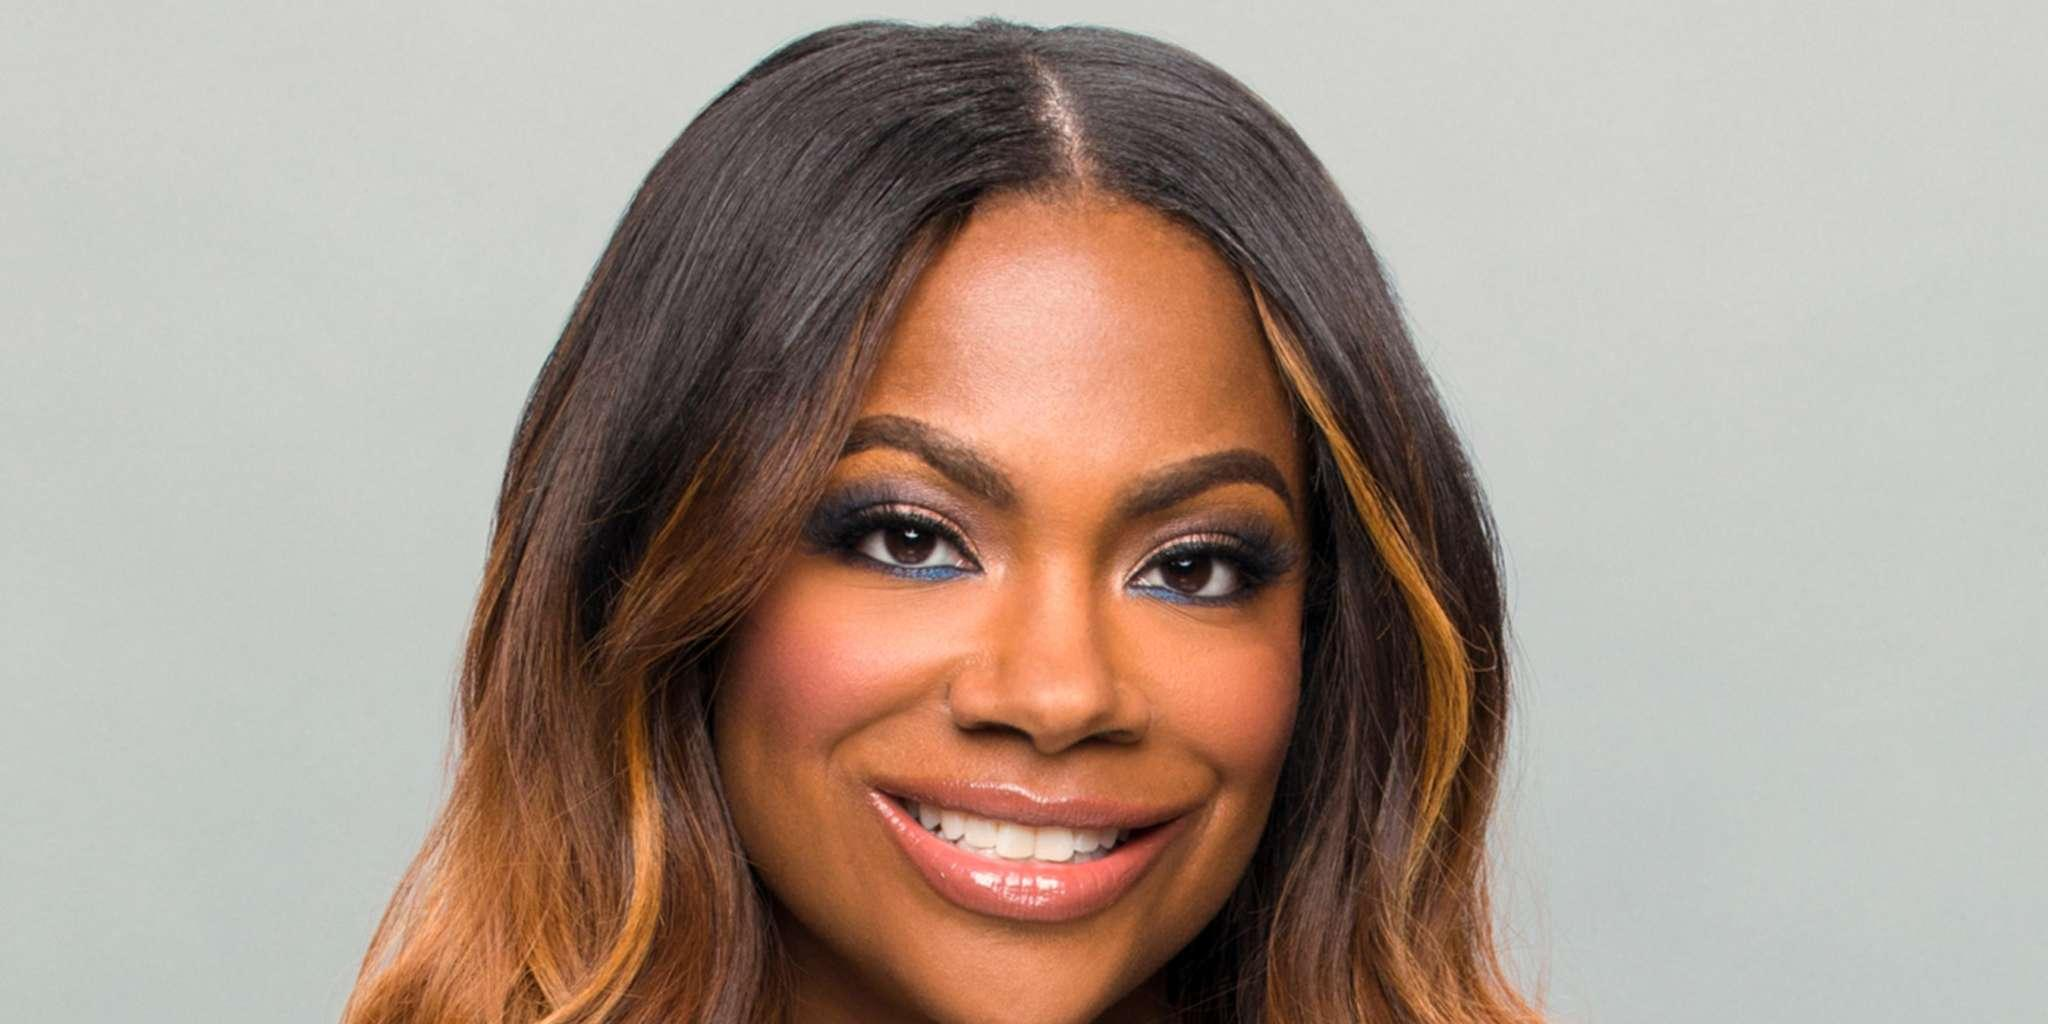 Kandi Burruss Gushes Over The Movie 'Brian Banks' - See Her Message To Fans